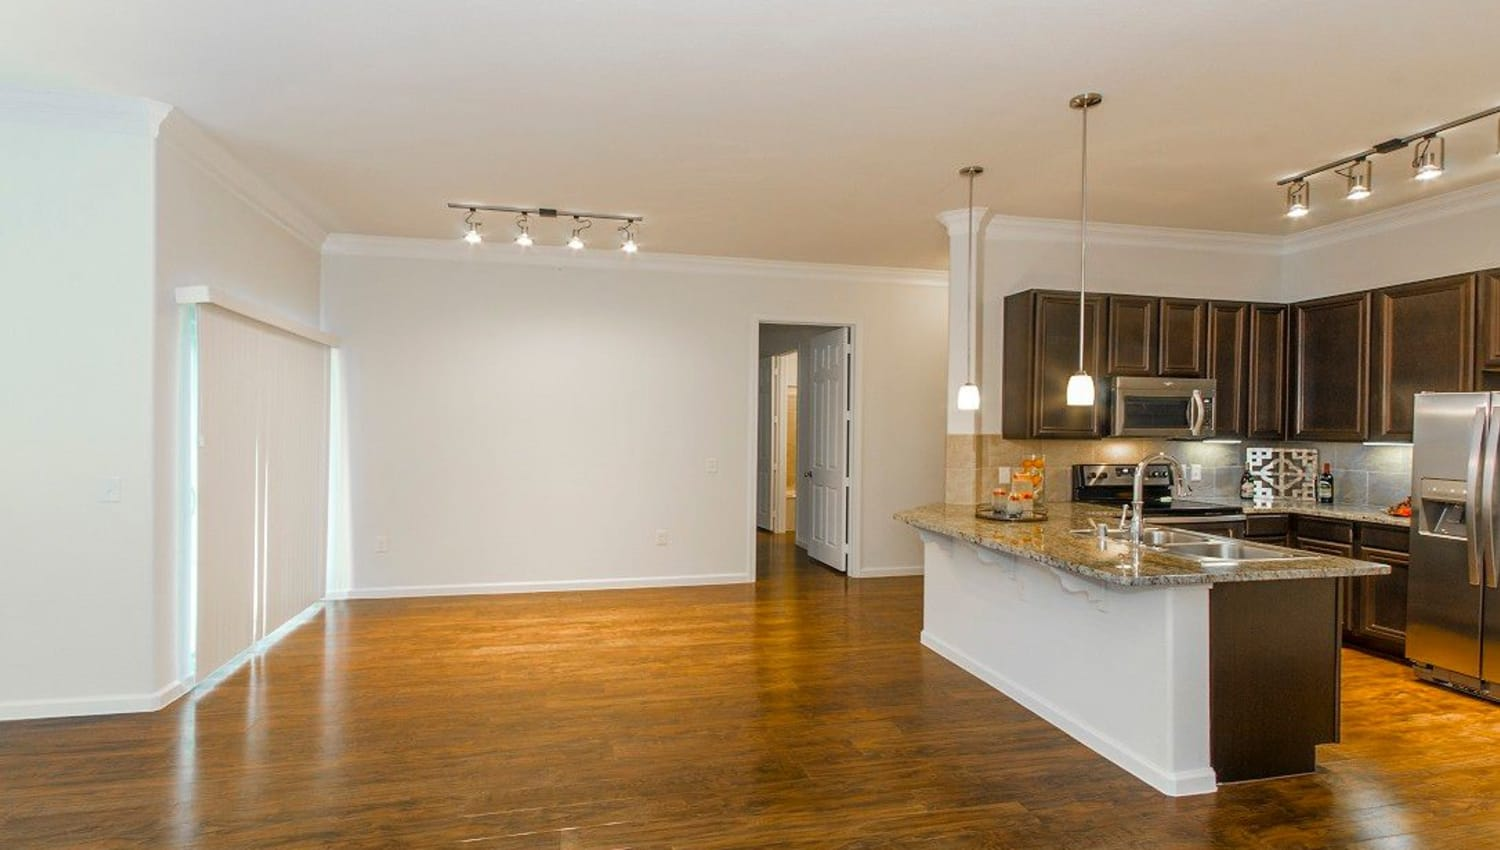 Beautifully finished hardwood floors throughout the living areas of a model home at Olympus Woodbridge in Sachse, Texas